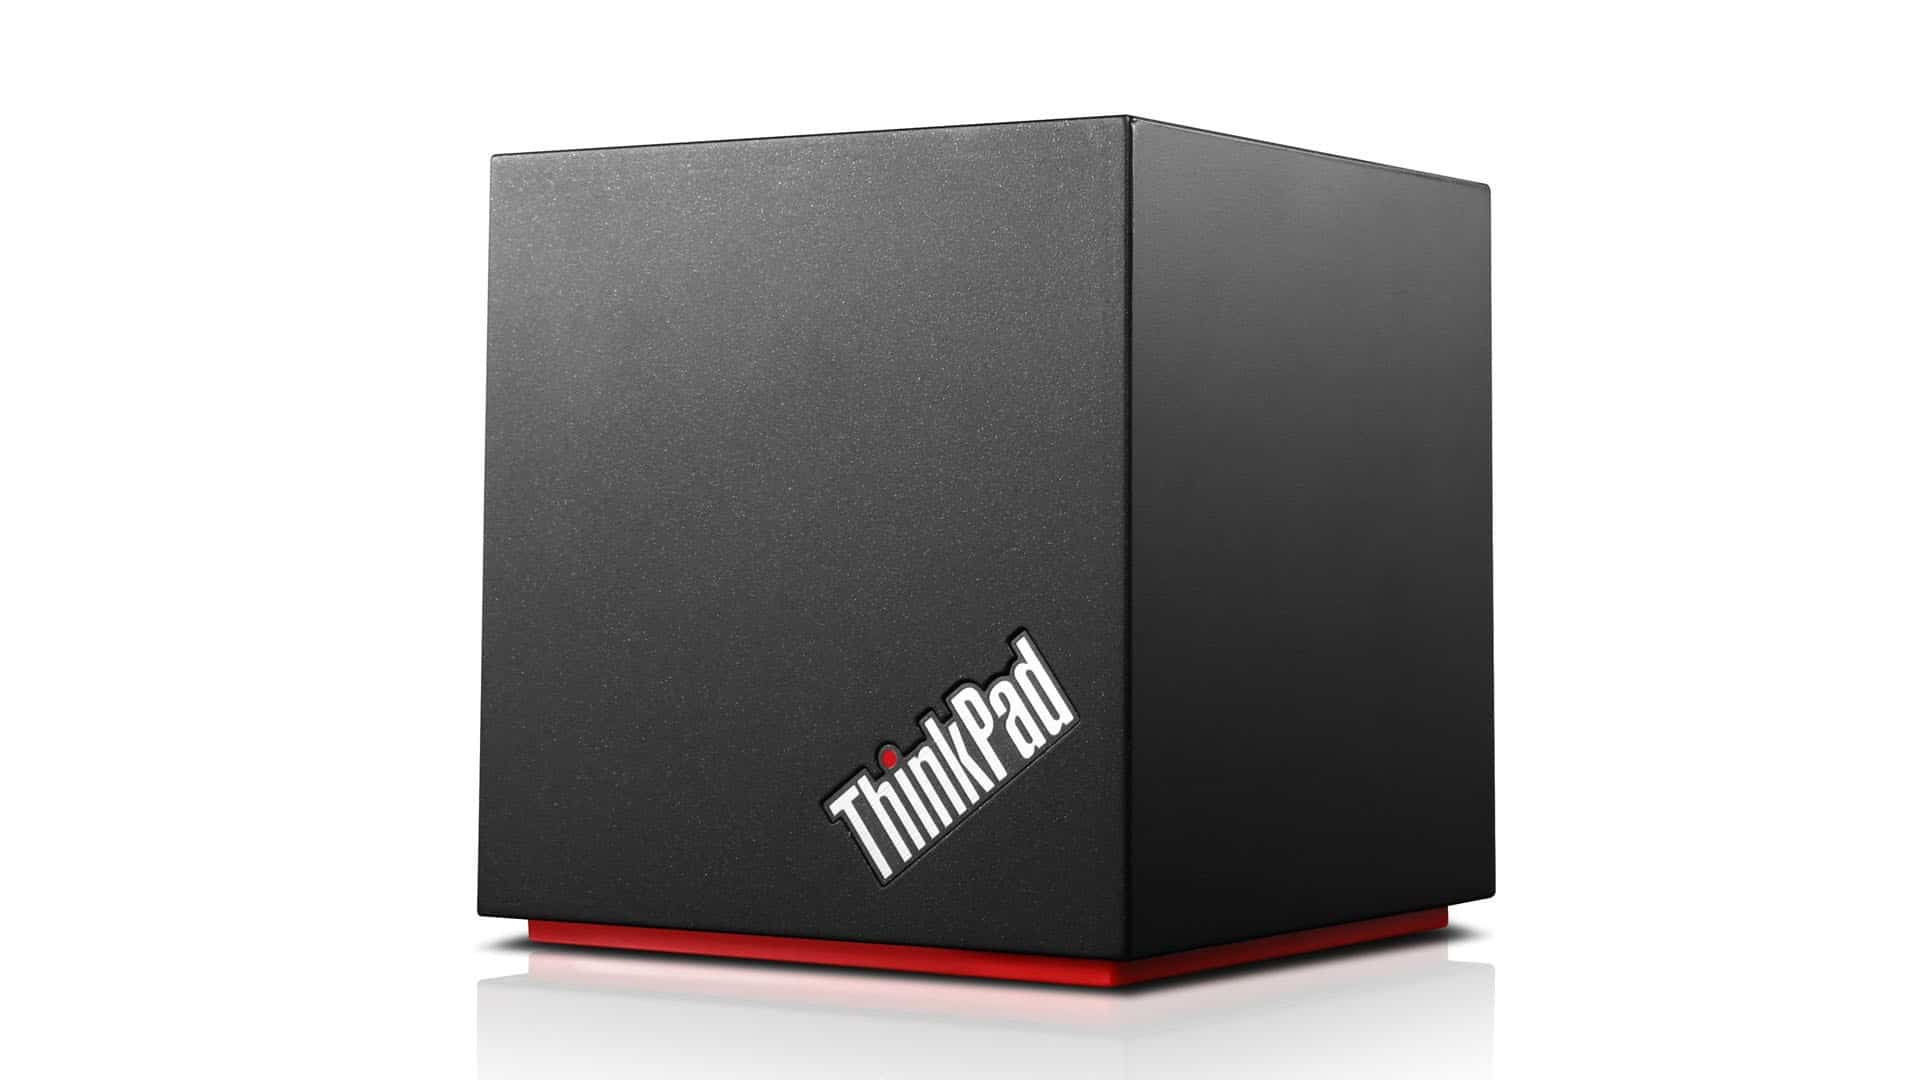 Lenovo ThinkPad WiGig Dock